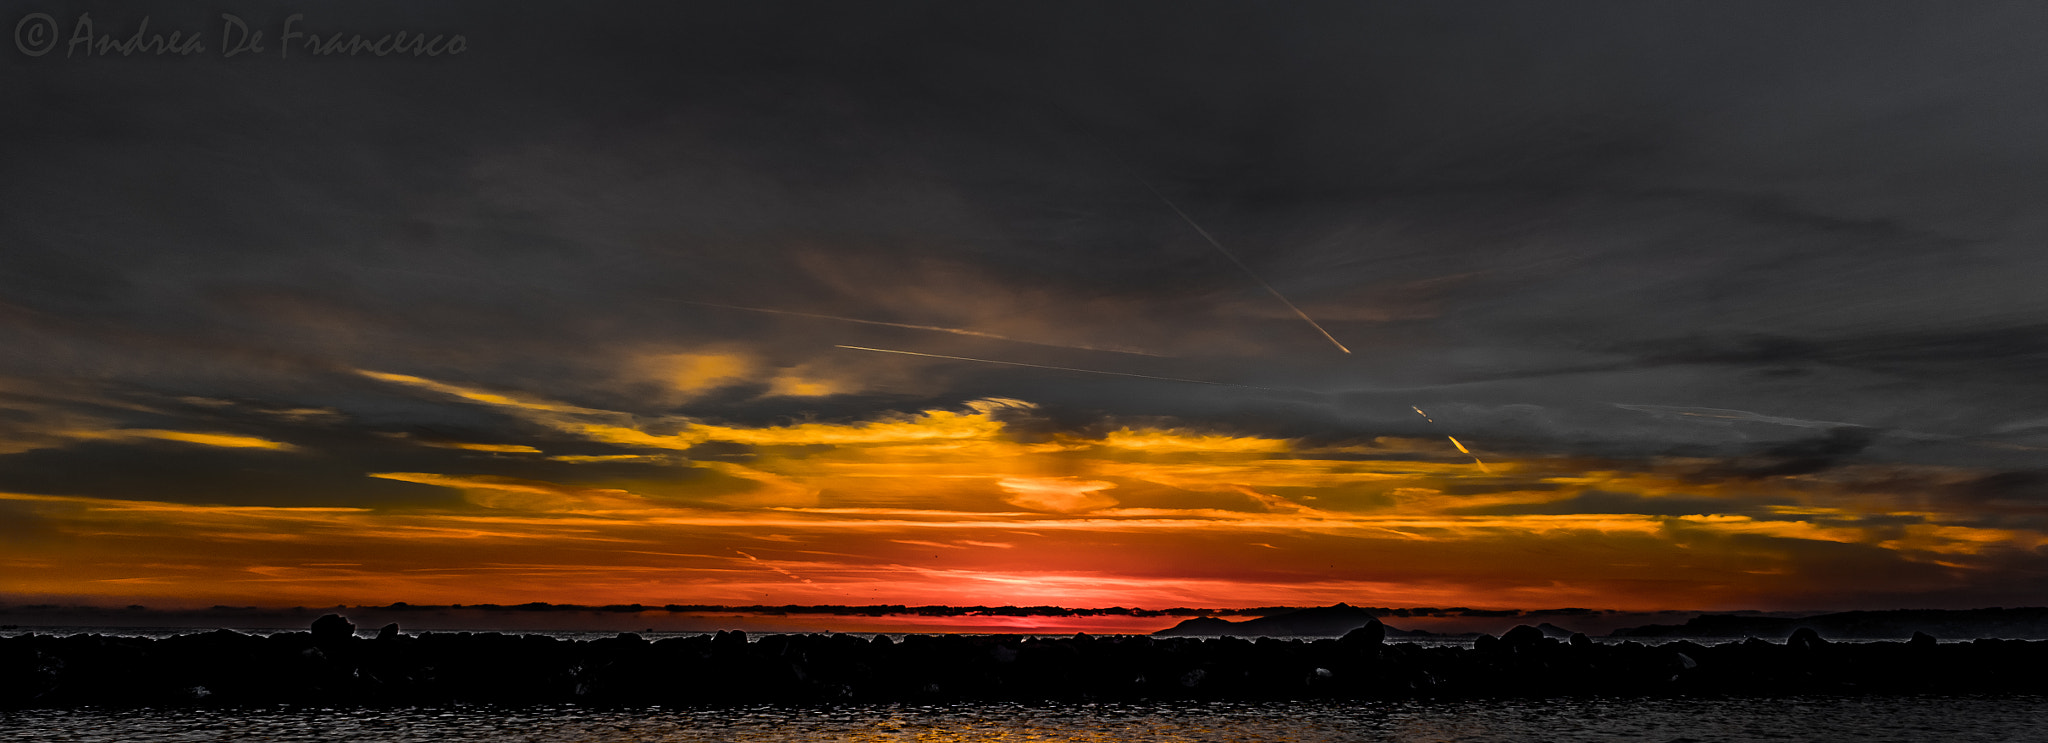 Photograph Apocalypse sunset by Andrea De Francesco on 500px